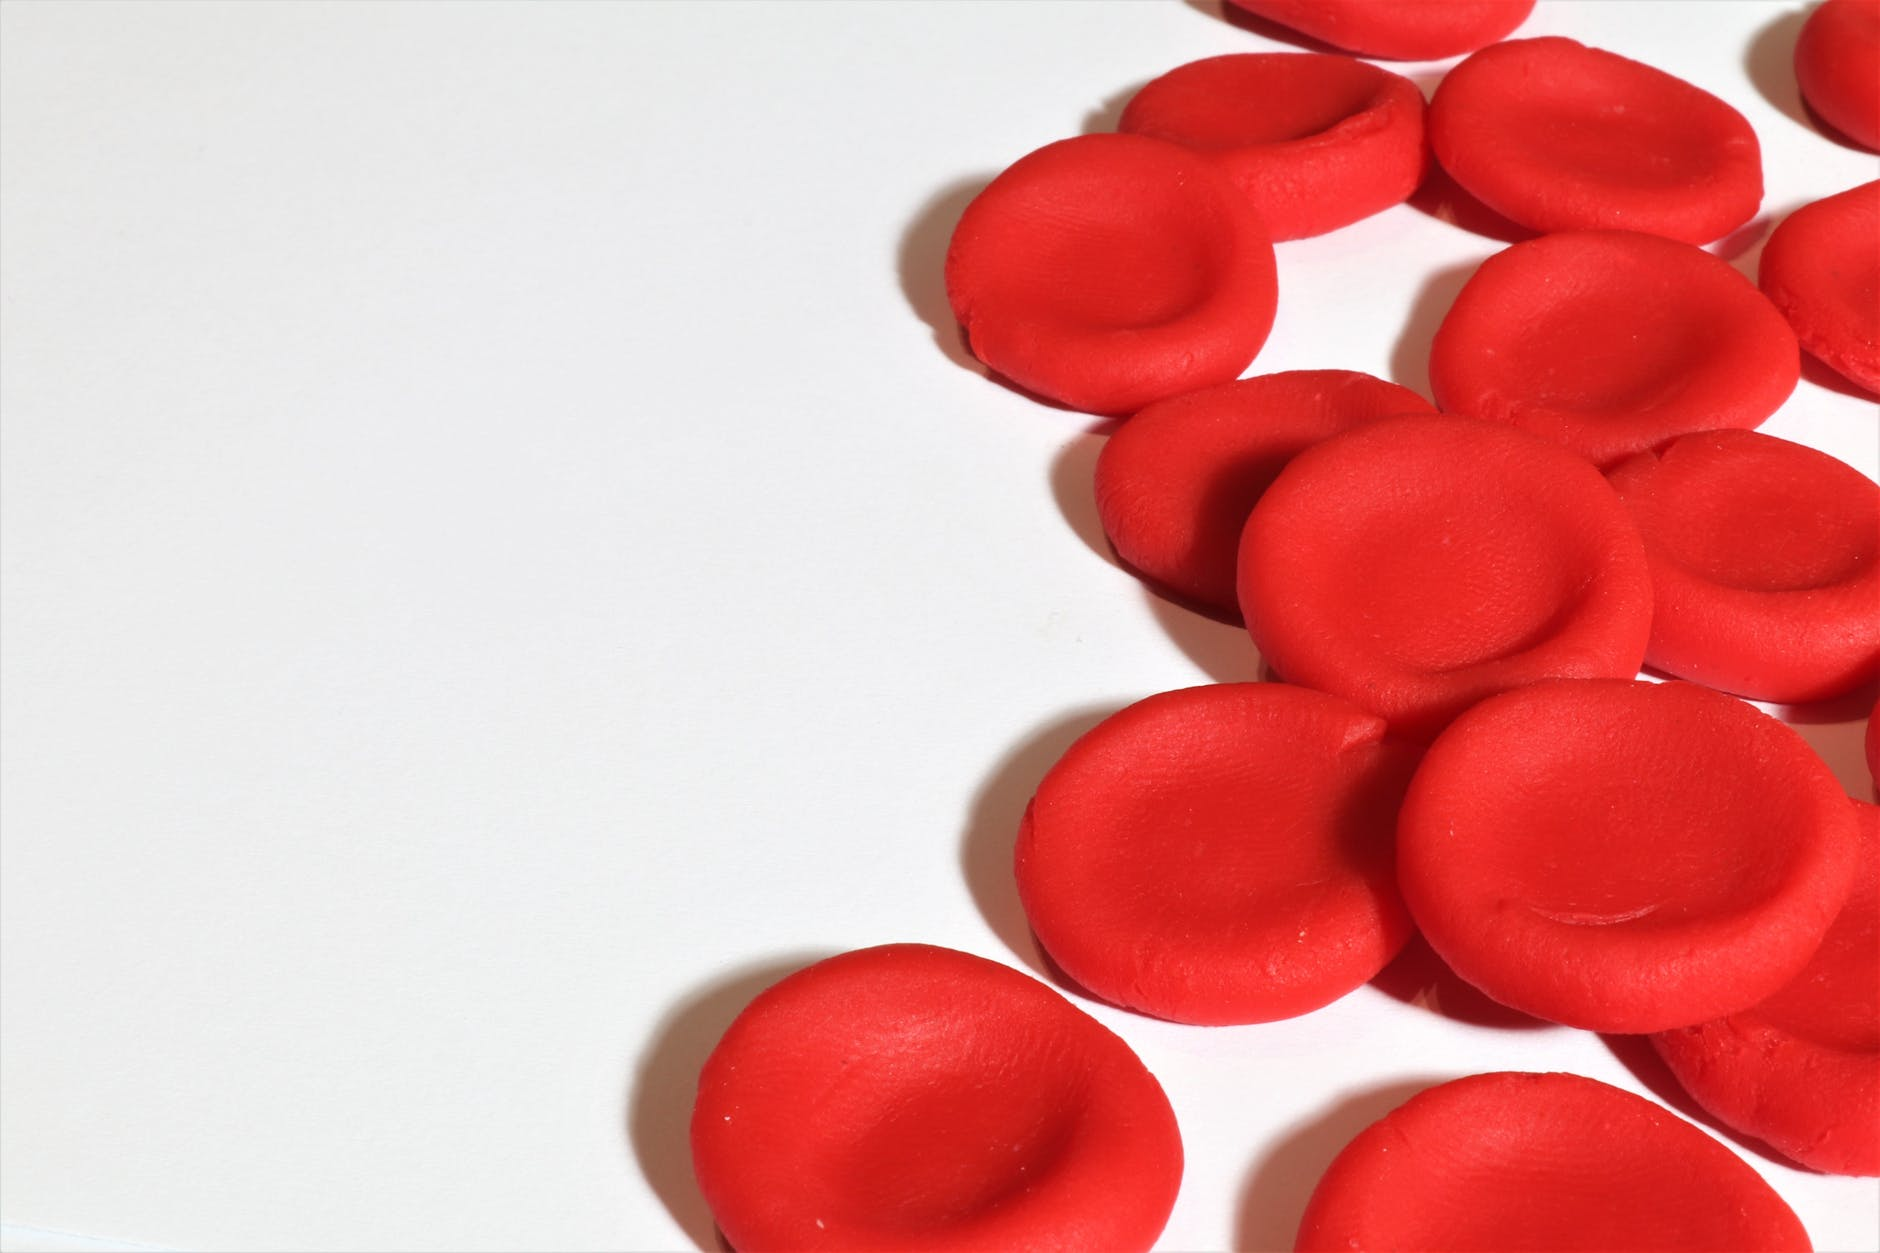 red bloodcells on white surface